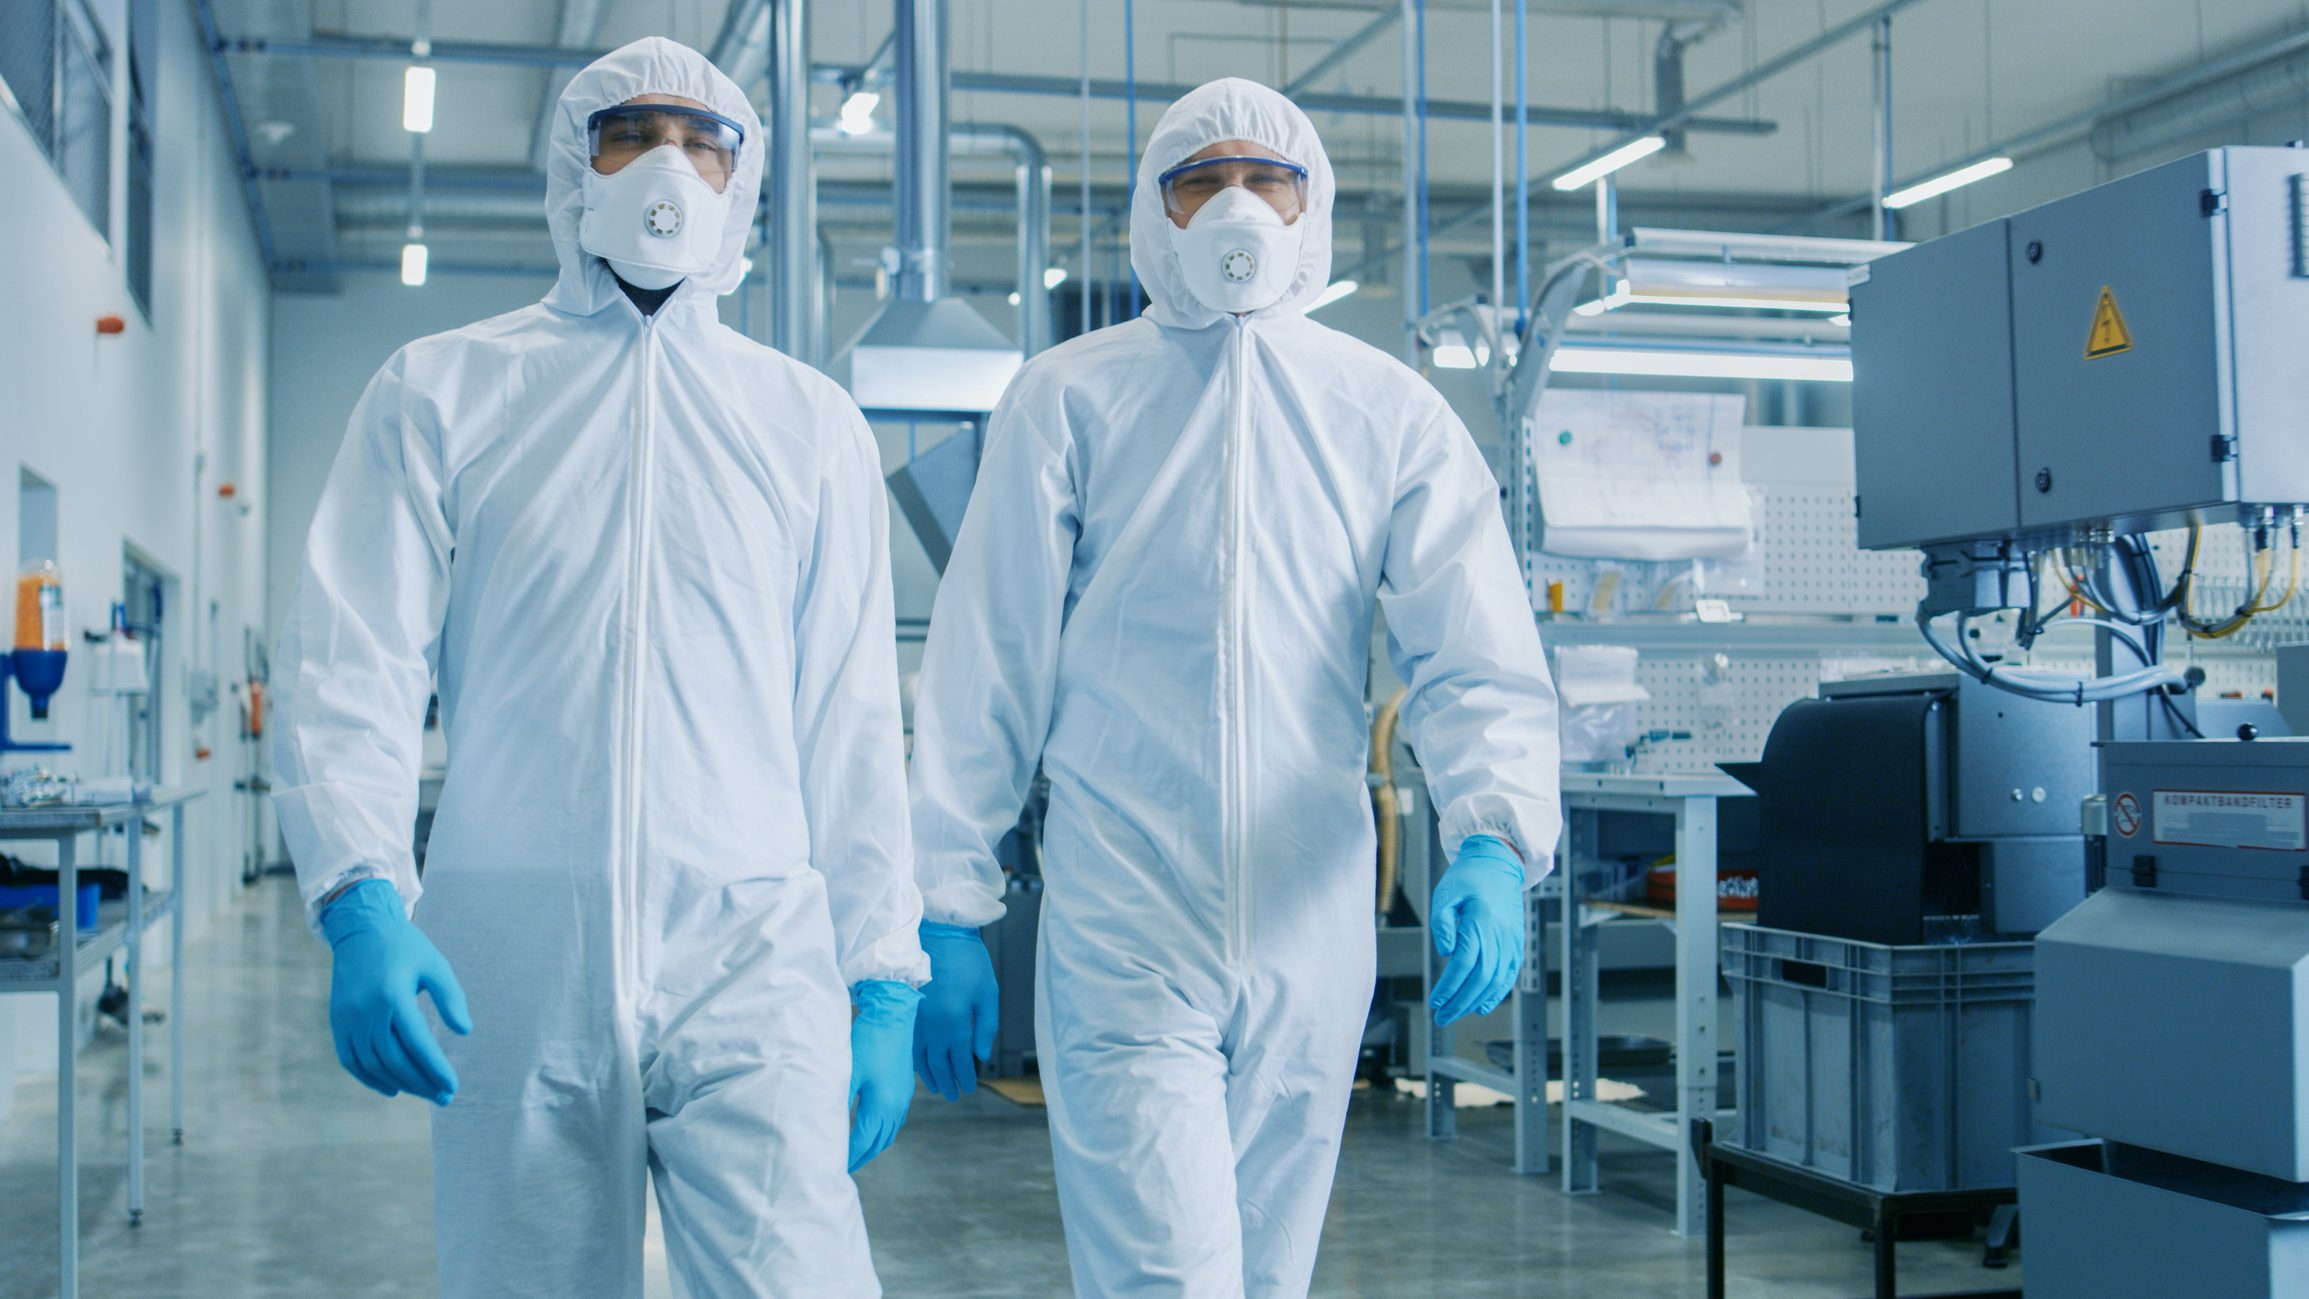 Cleanroom environment photo of two people walking through the room.